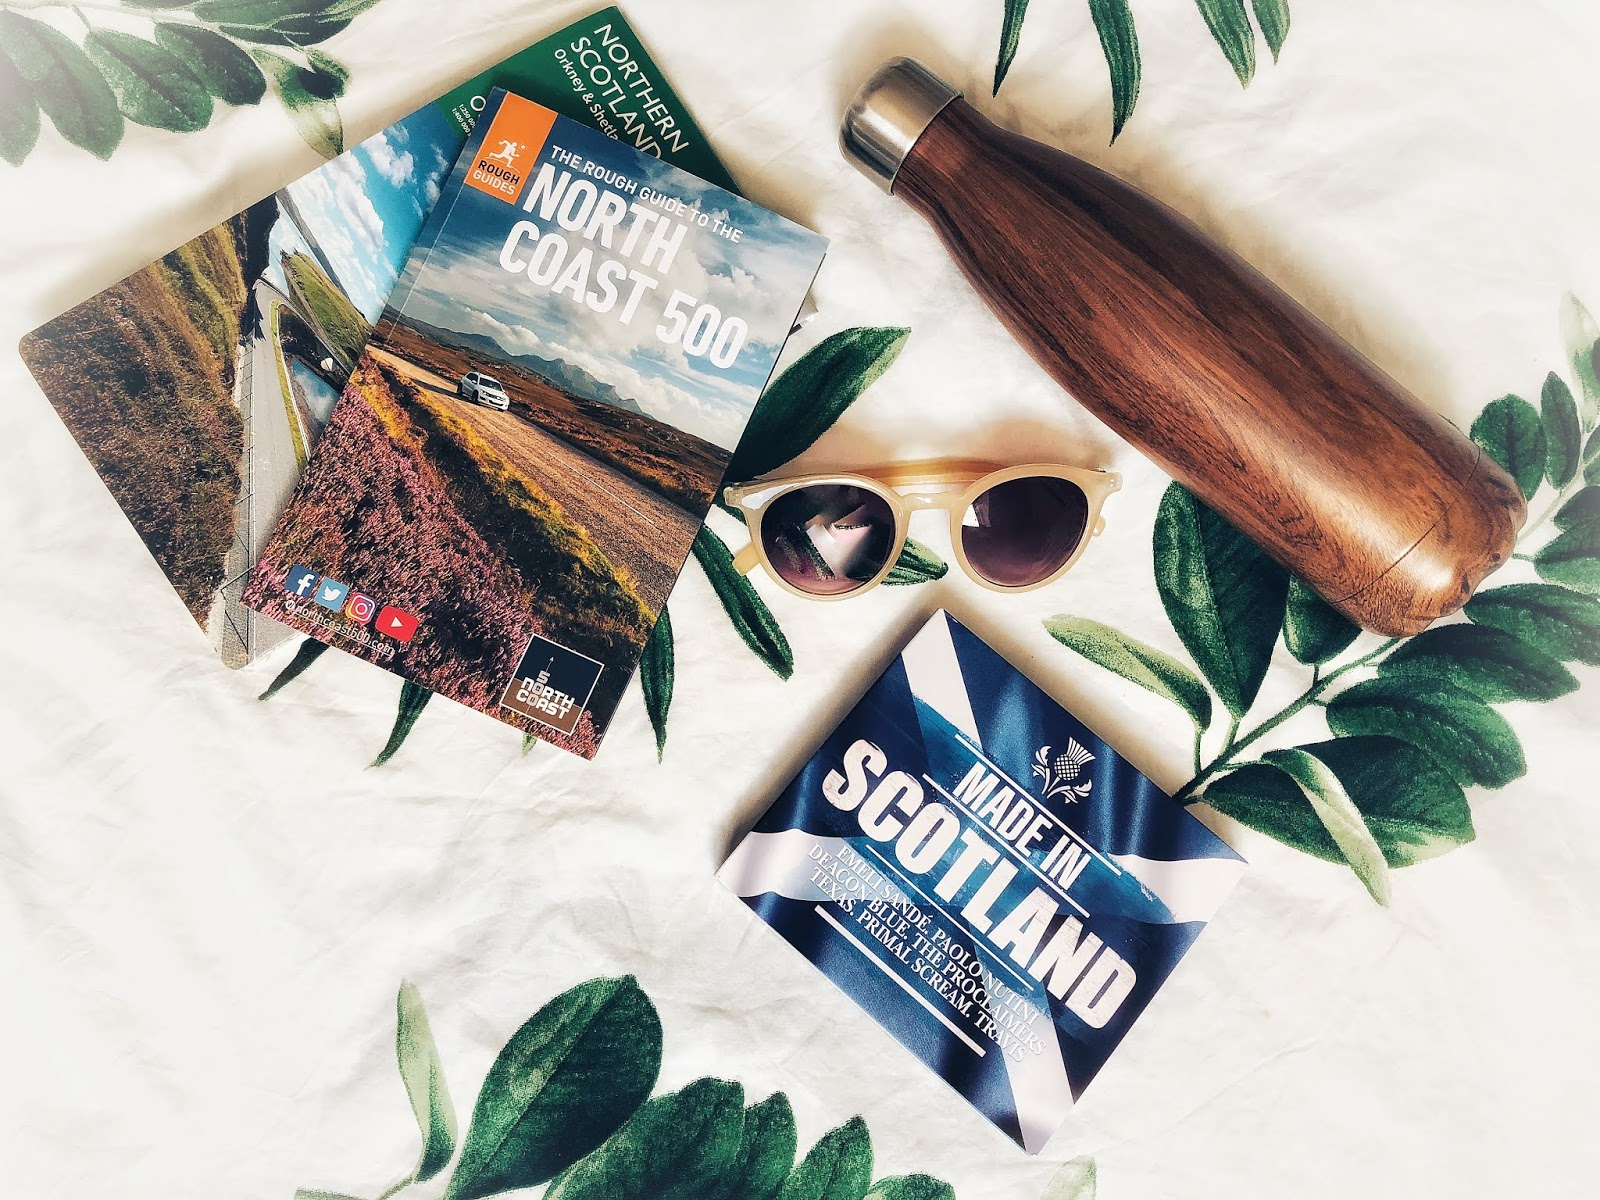 North Coast 500 - we're off to the highlands!